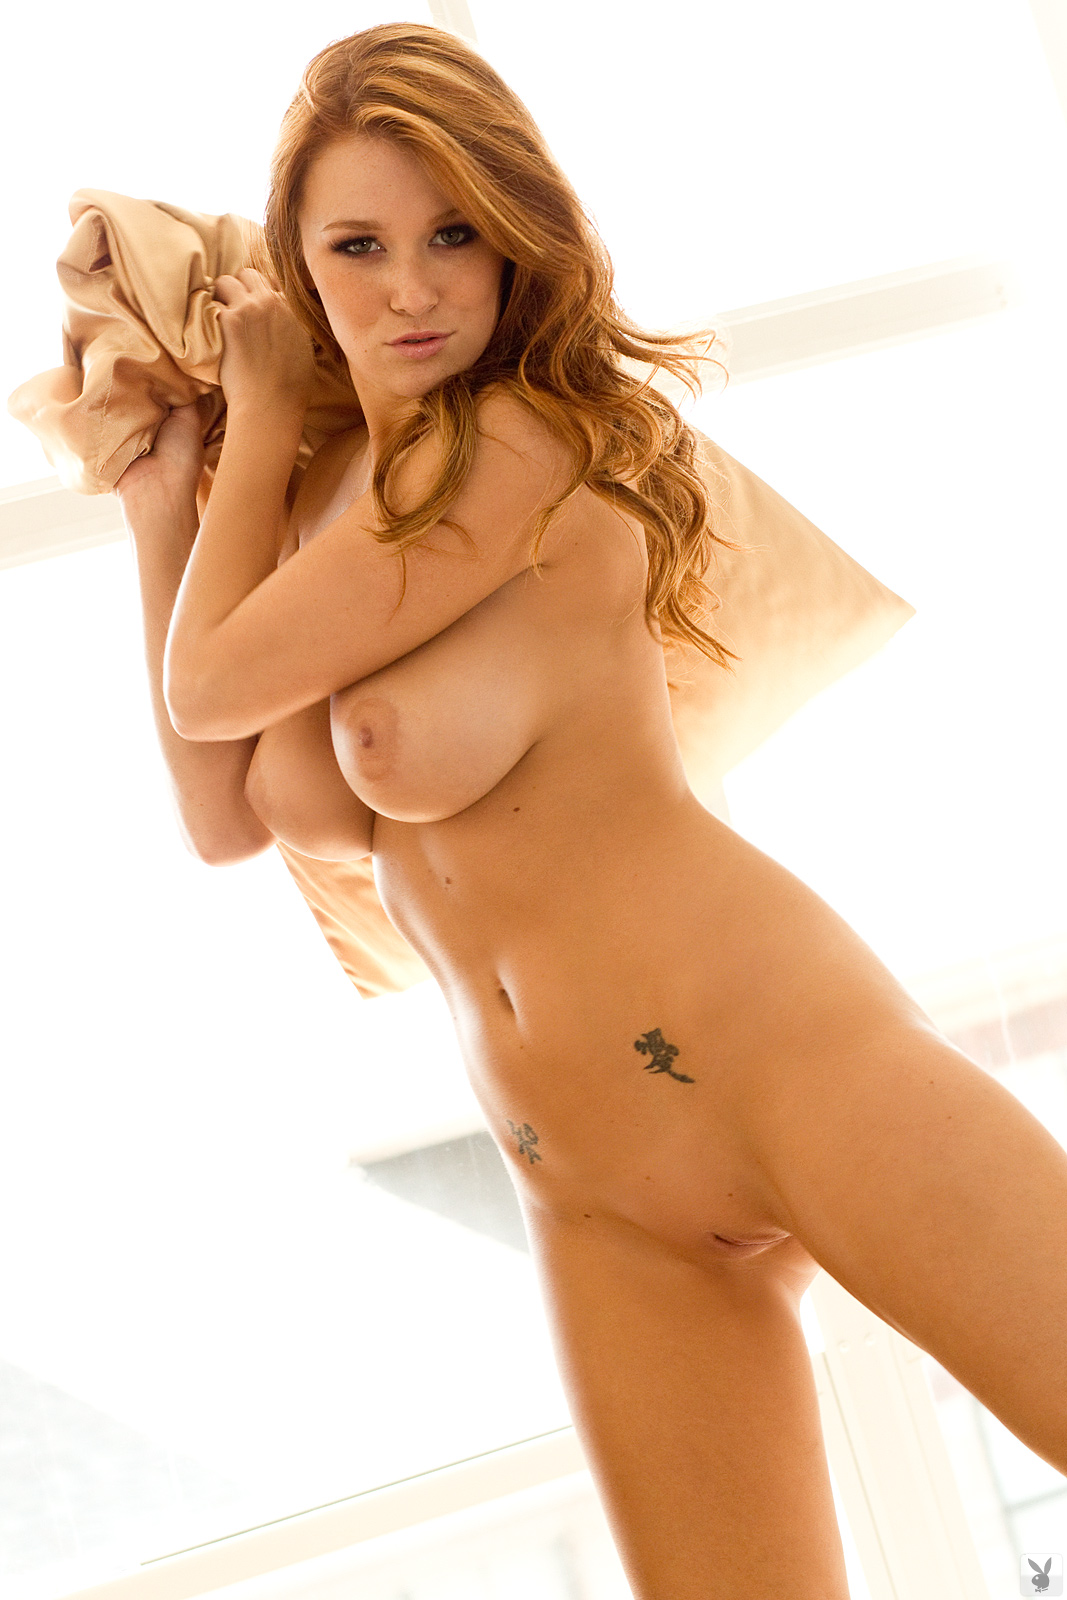 Leanna Decker Cybergirl Of The Month